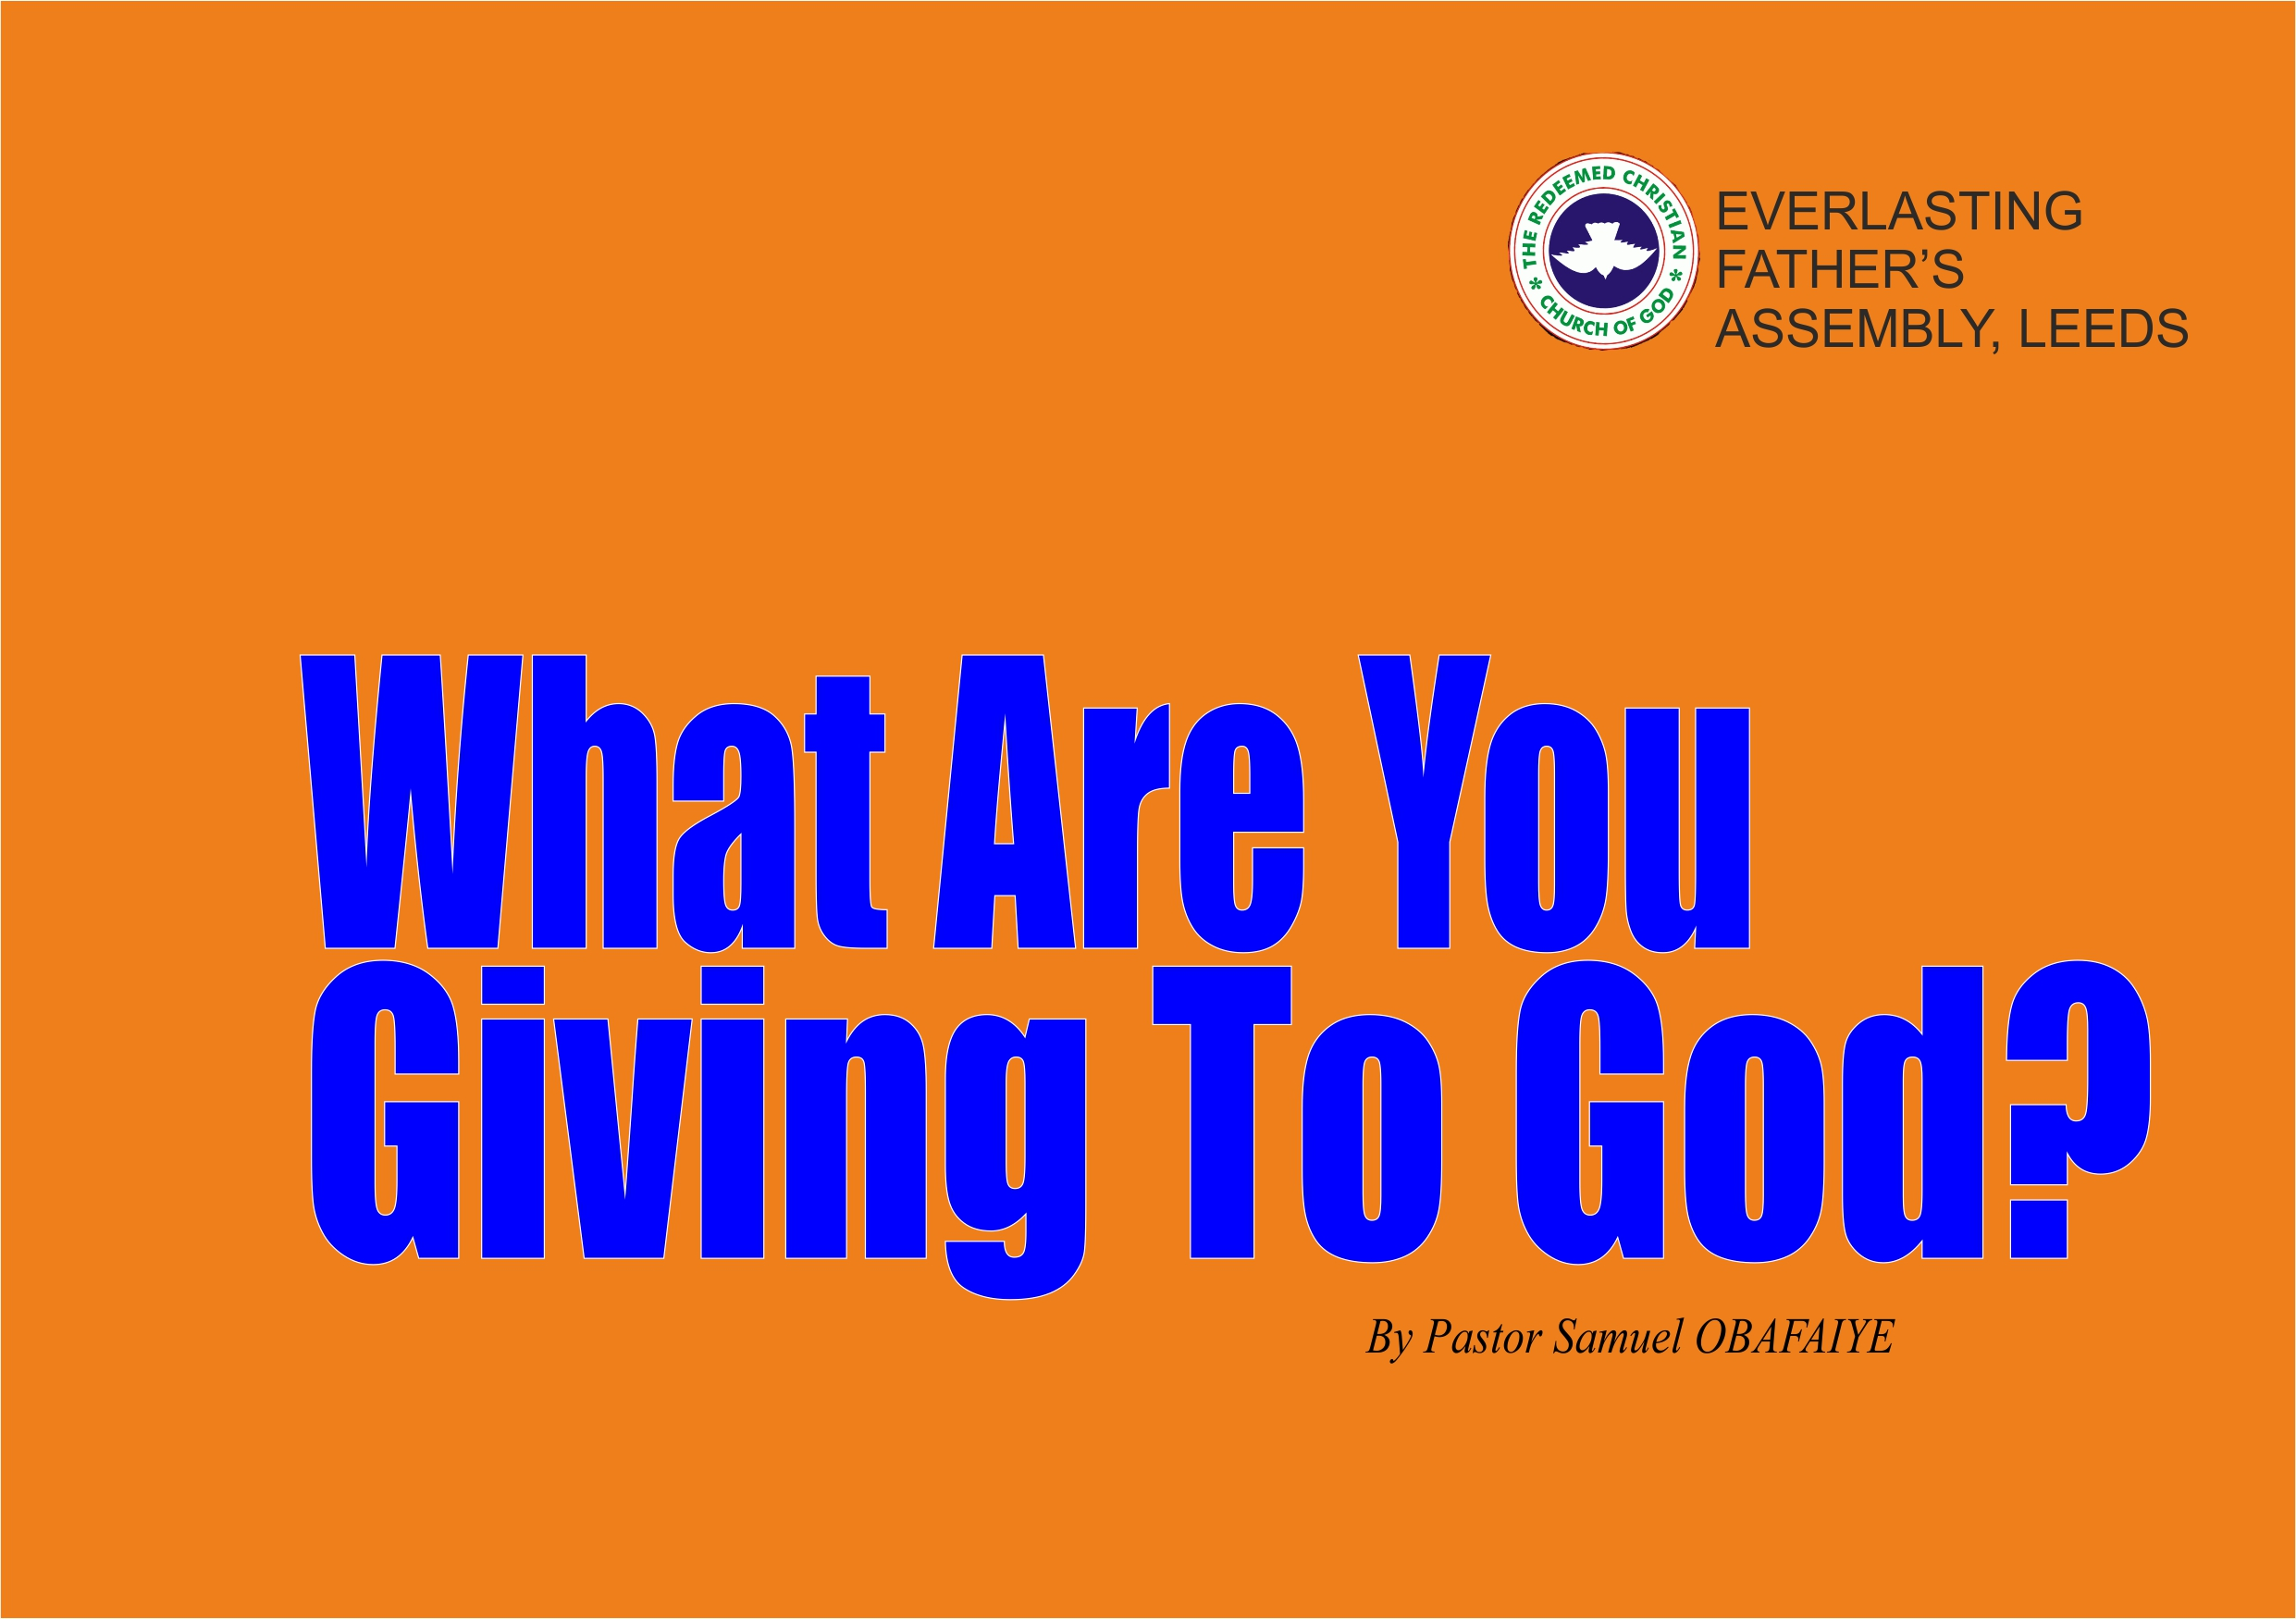 What Are You Giving To God? by Pastor Samuel Obafaiye